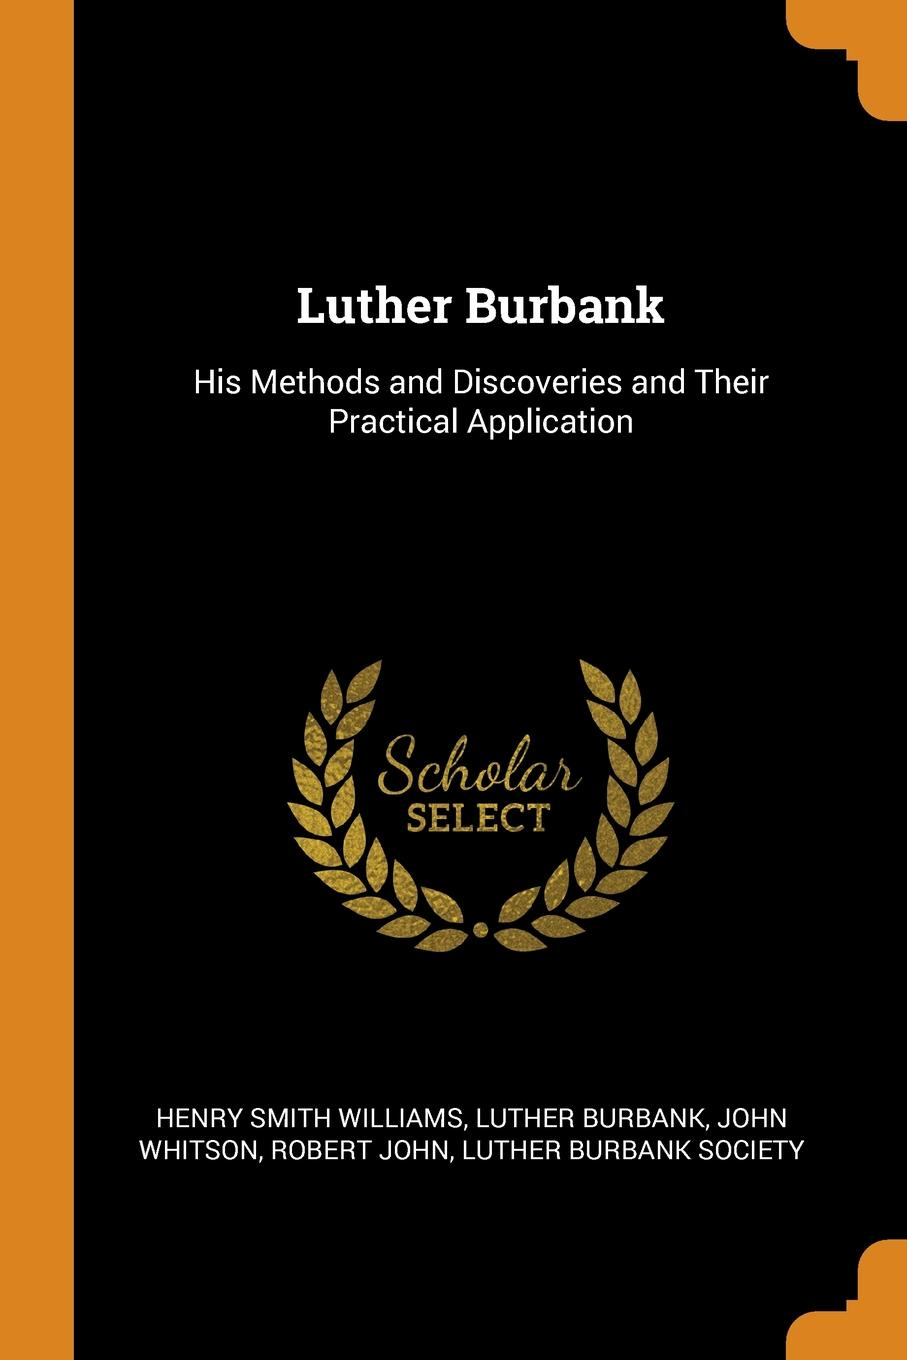 Henry Smith Williams, Luther Burbank, John Whitson. Luther Burbank. His Methods and Discoveries and Their Practical Application